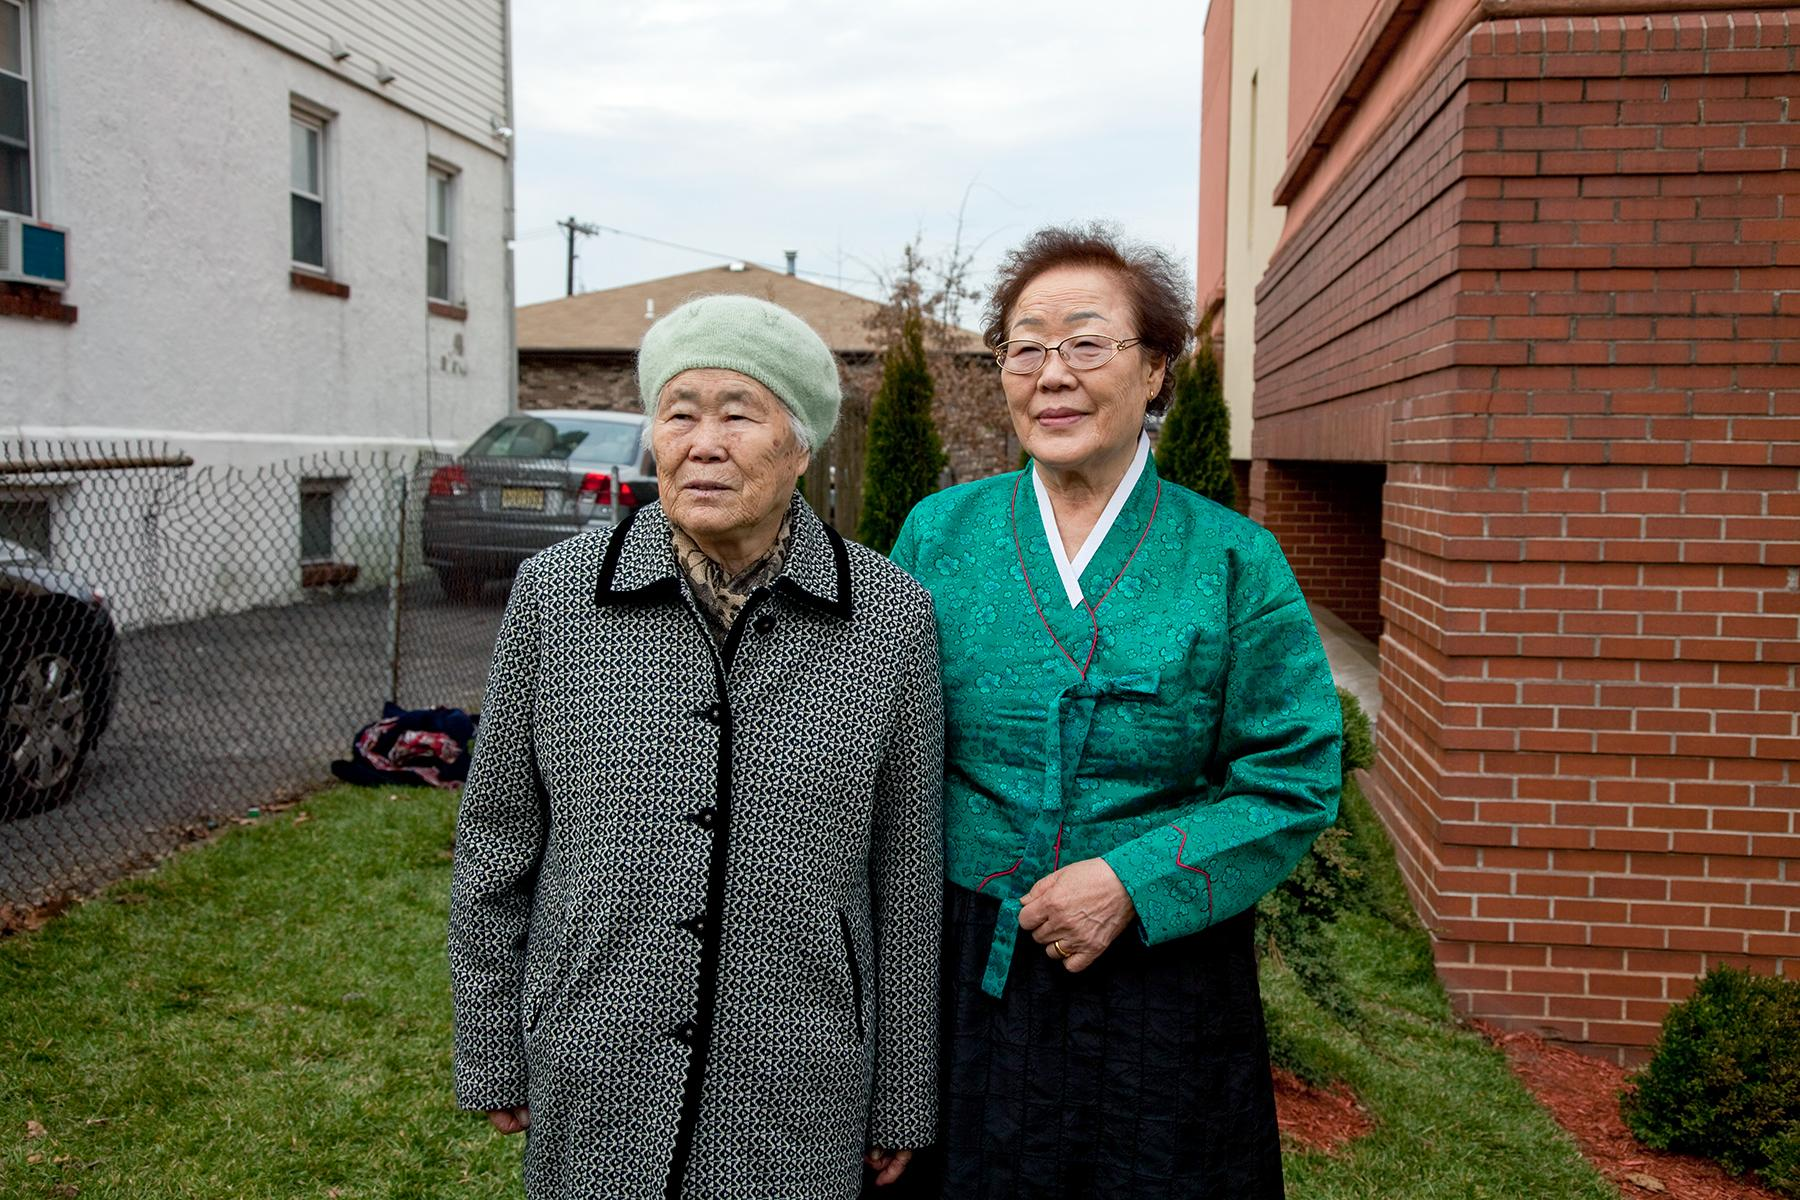 Lee Ok Seon Halmoni and Lee Yong Soo Halmoni posing for photos after the ceremony, Palisades Park, NJ, 2011